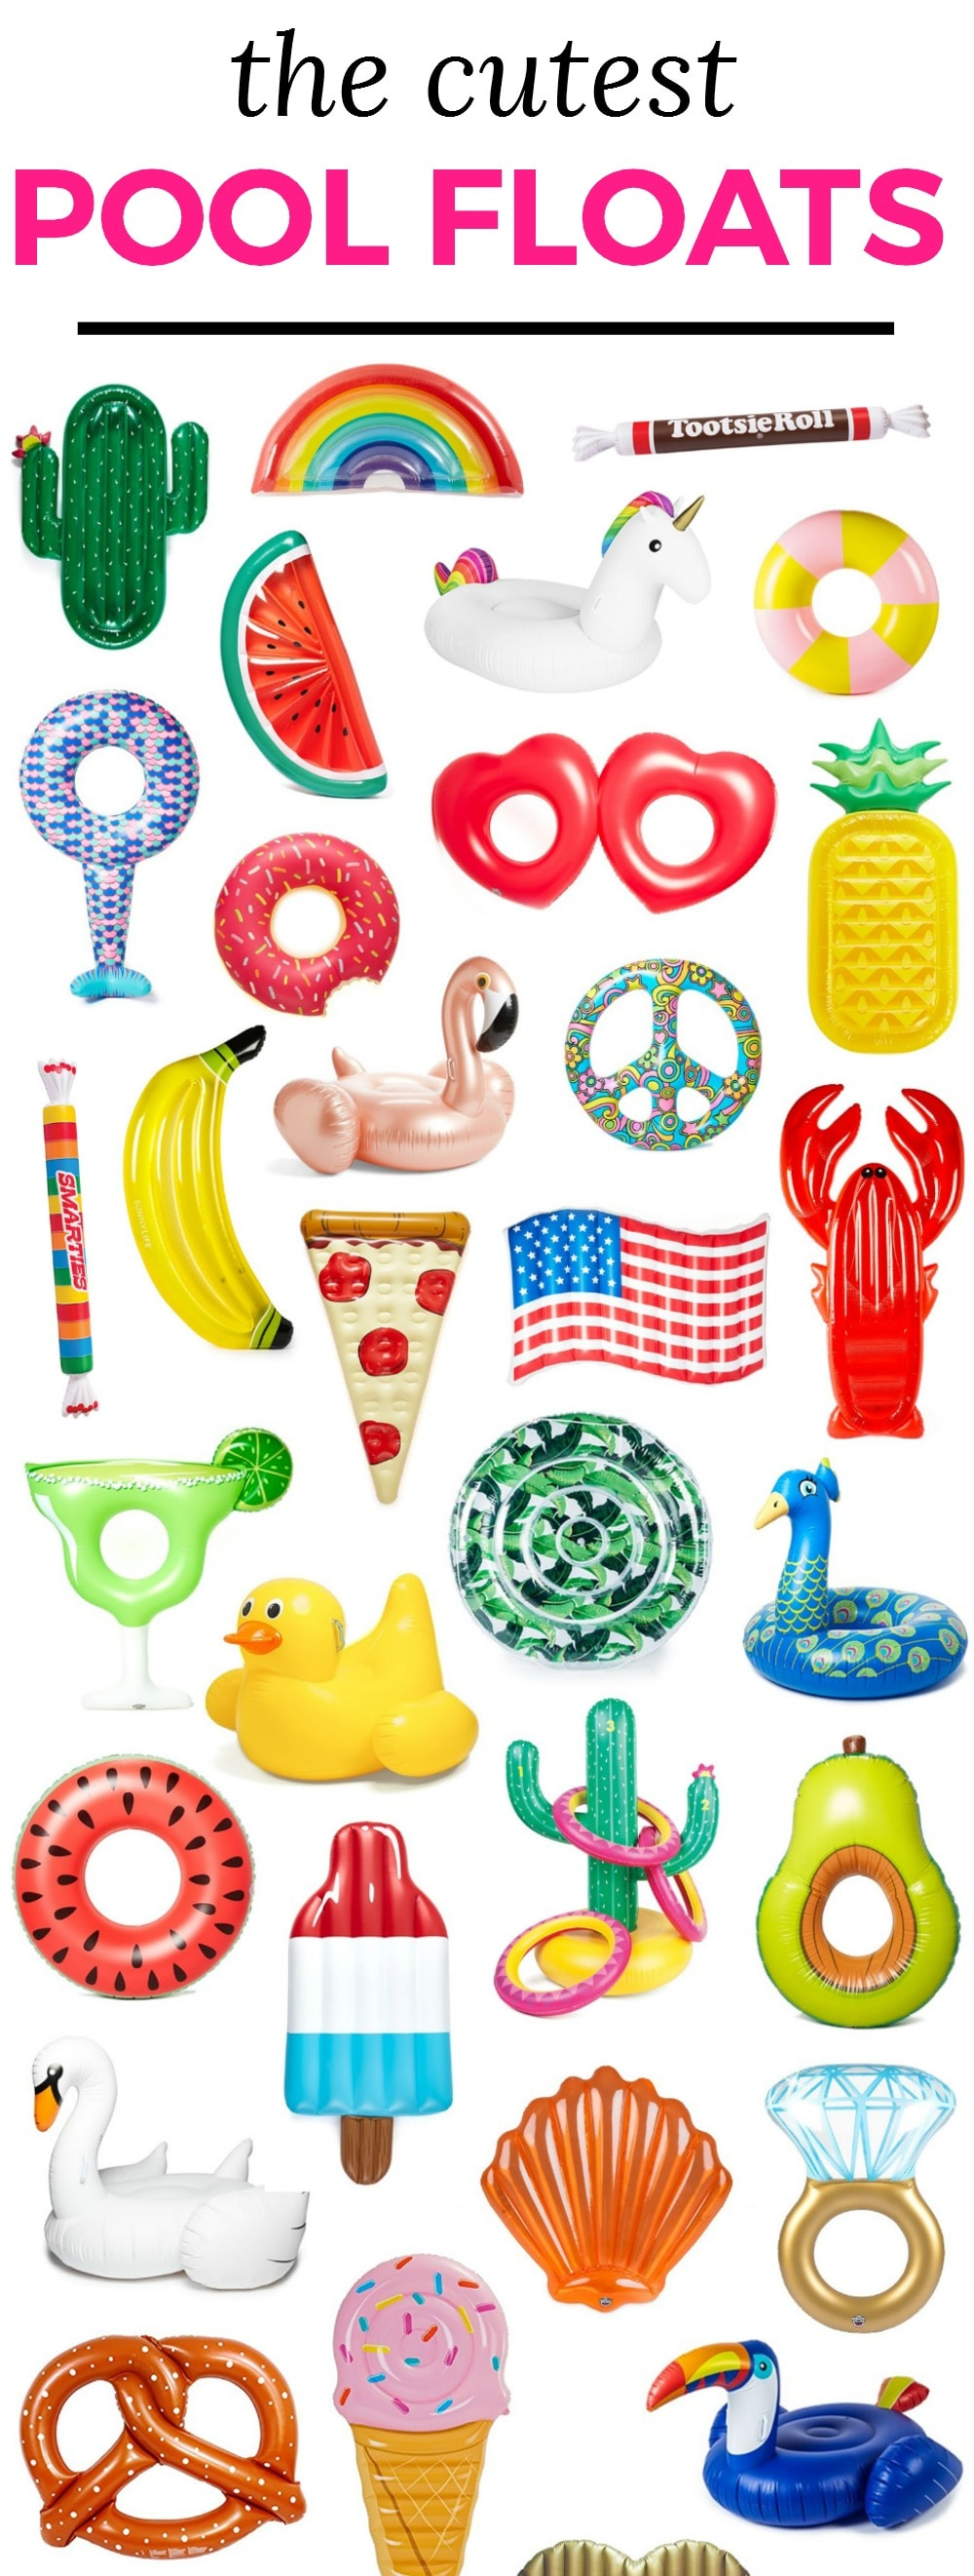 The best and cutest inflatable pool floats for Spring Break and summer vacation + how to score them at an amazing sale price! | Pool party essentials | Cute pool floats | Cactus, rainbow, flamingo, watermelon, unicorn, striped, mermaid tail, banana, rose gold flamingo, donut, donut with sprinkles, seashell, diamond ring, avocado, lobster, pineapple, heart, peace sign, margarita, swan, American flag, pizza, Tootsie roll pool float | Florida lifestyle blogger Ashley Brooke Nicholas